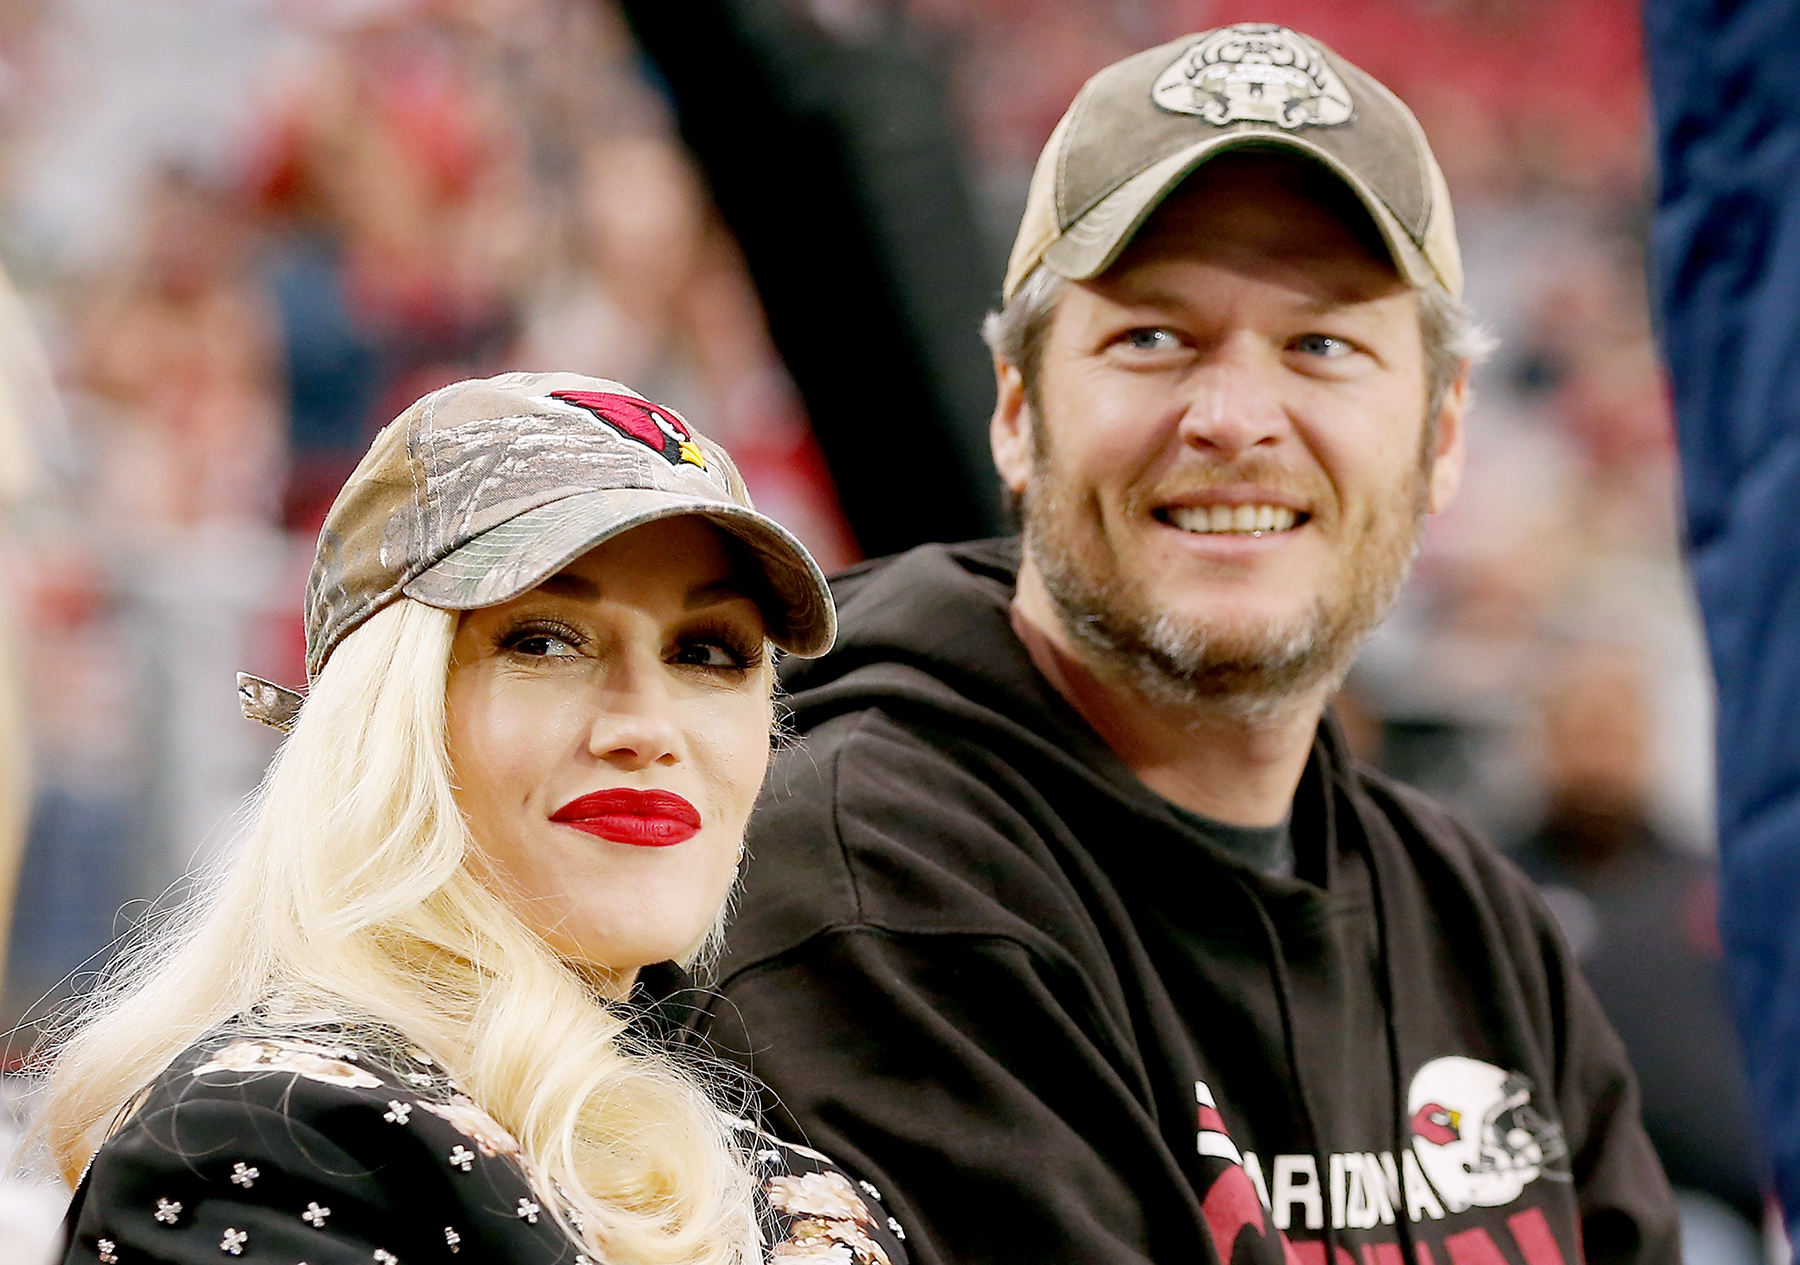 Gwen Stefani and Blake Shelton attend the NFL game between the Green Bay Packers and Arizona Cardinals at University of Phoenix Stadium on December 27, 2015.